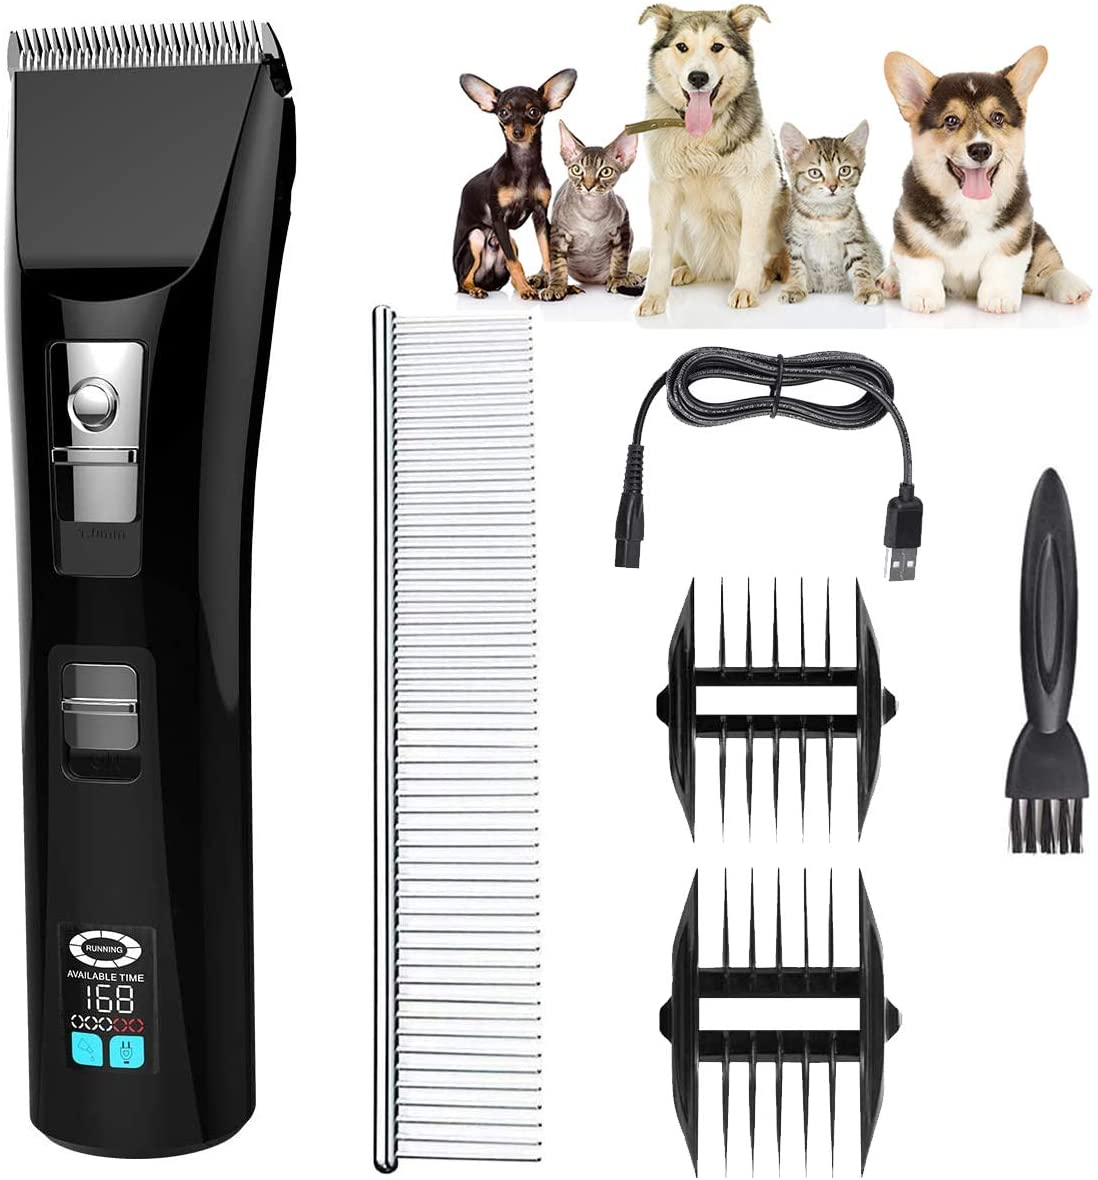 Dog Clippers Pet Grooming wit Shaver Max 54% OFF Professional Ranking TOP4